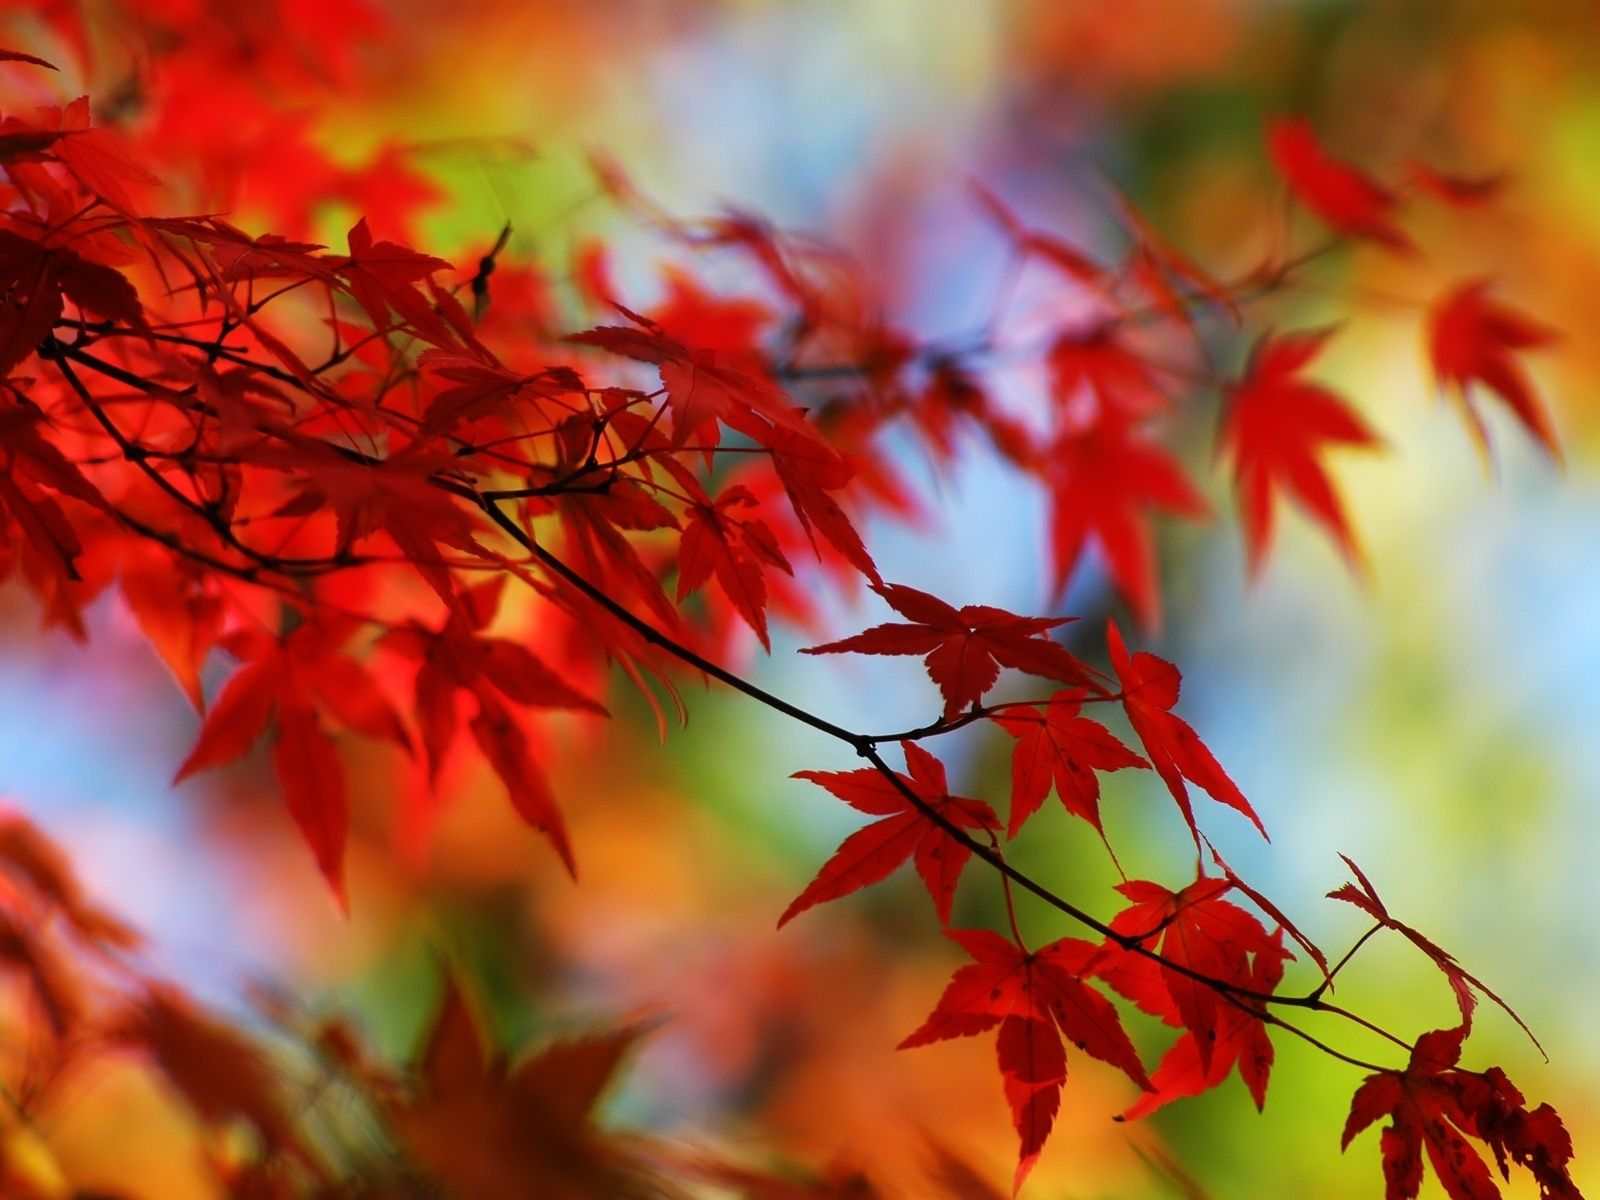 Autumn images Autumn leaves HD wallpaper and background photos ...